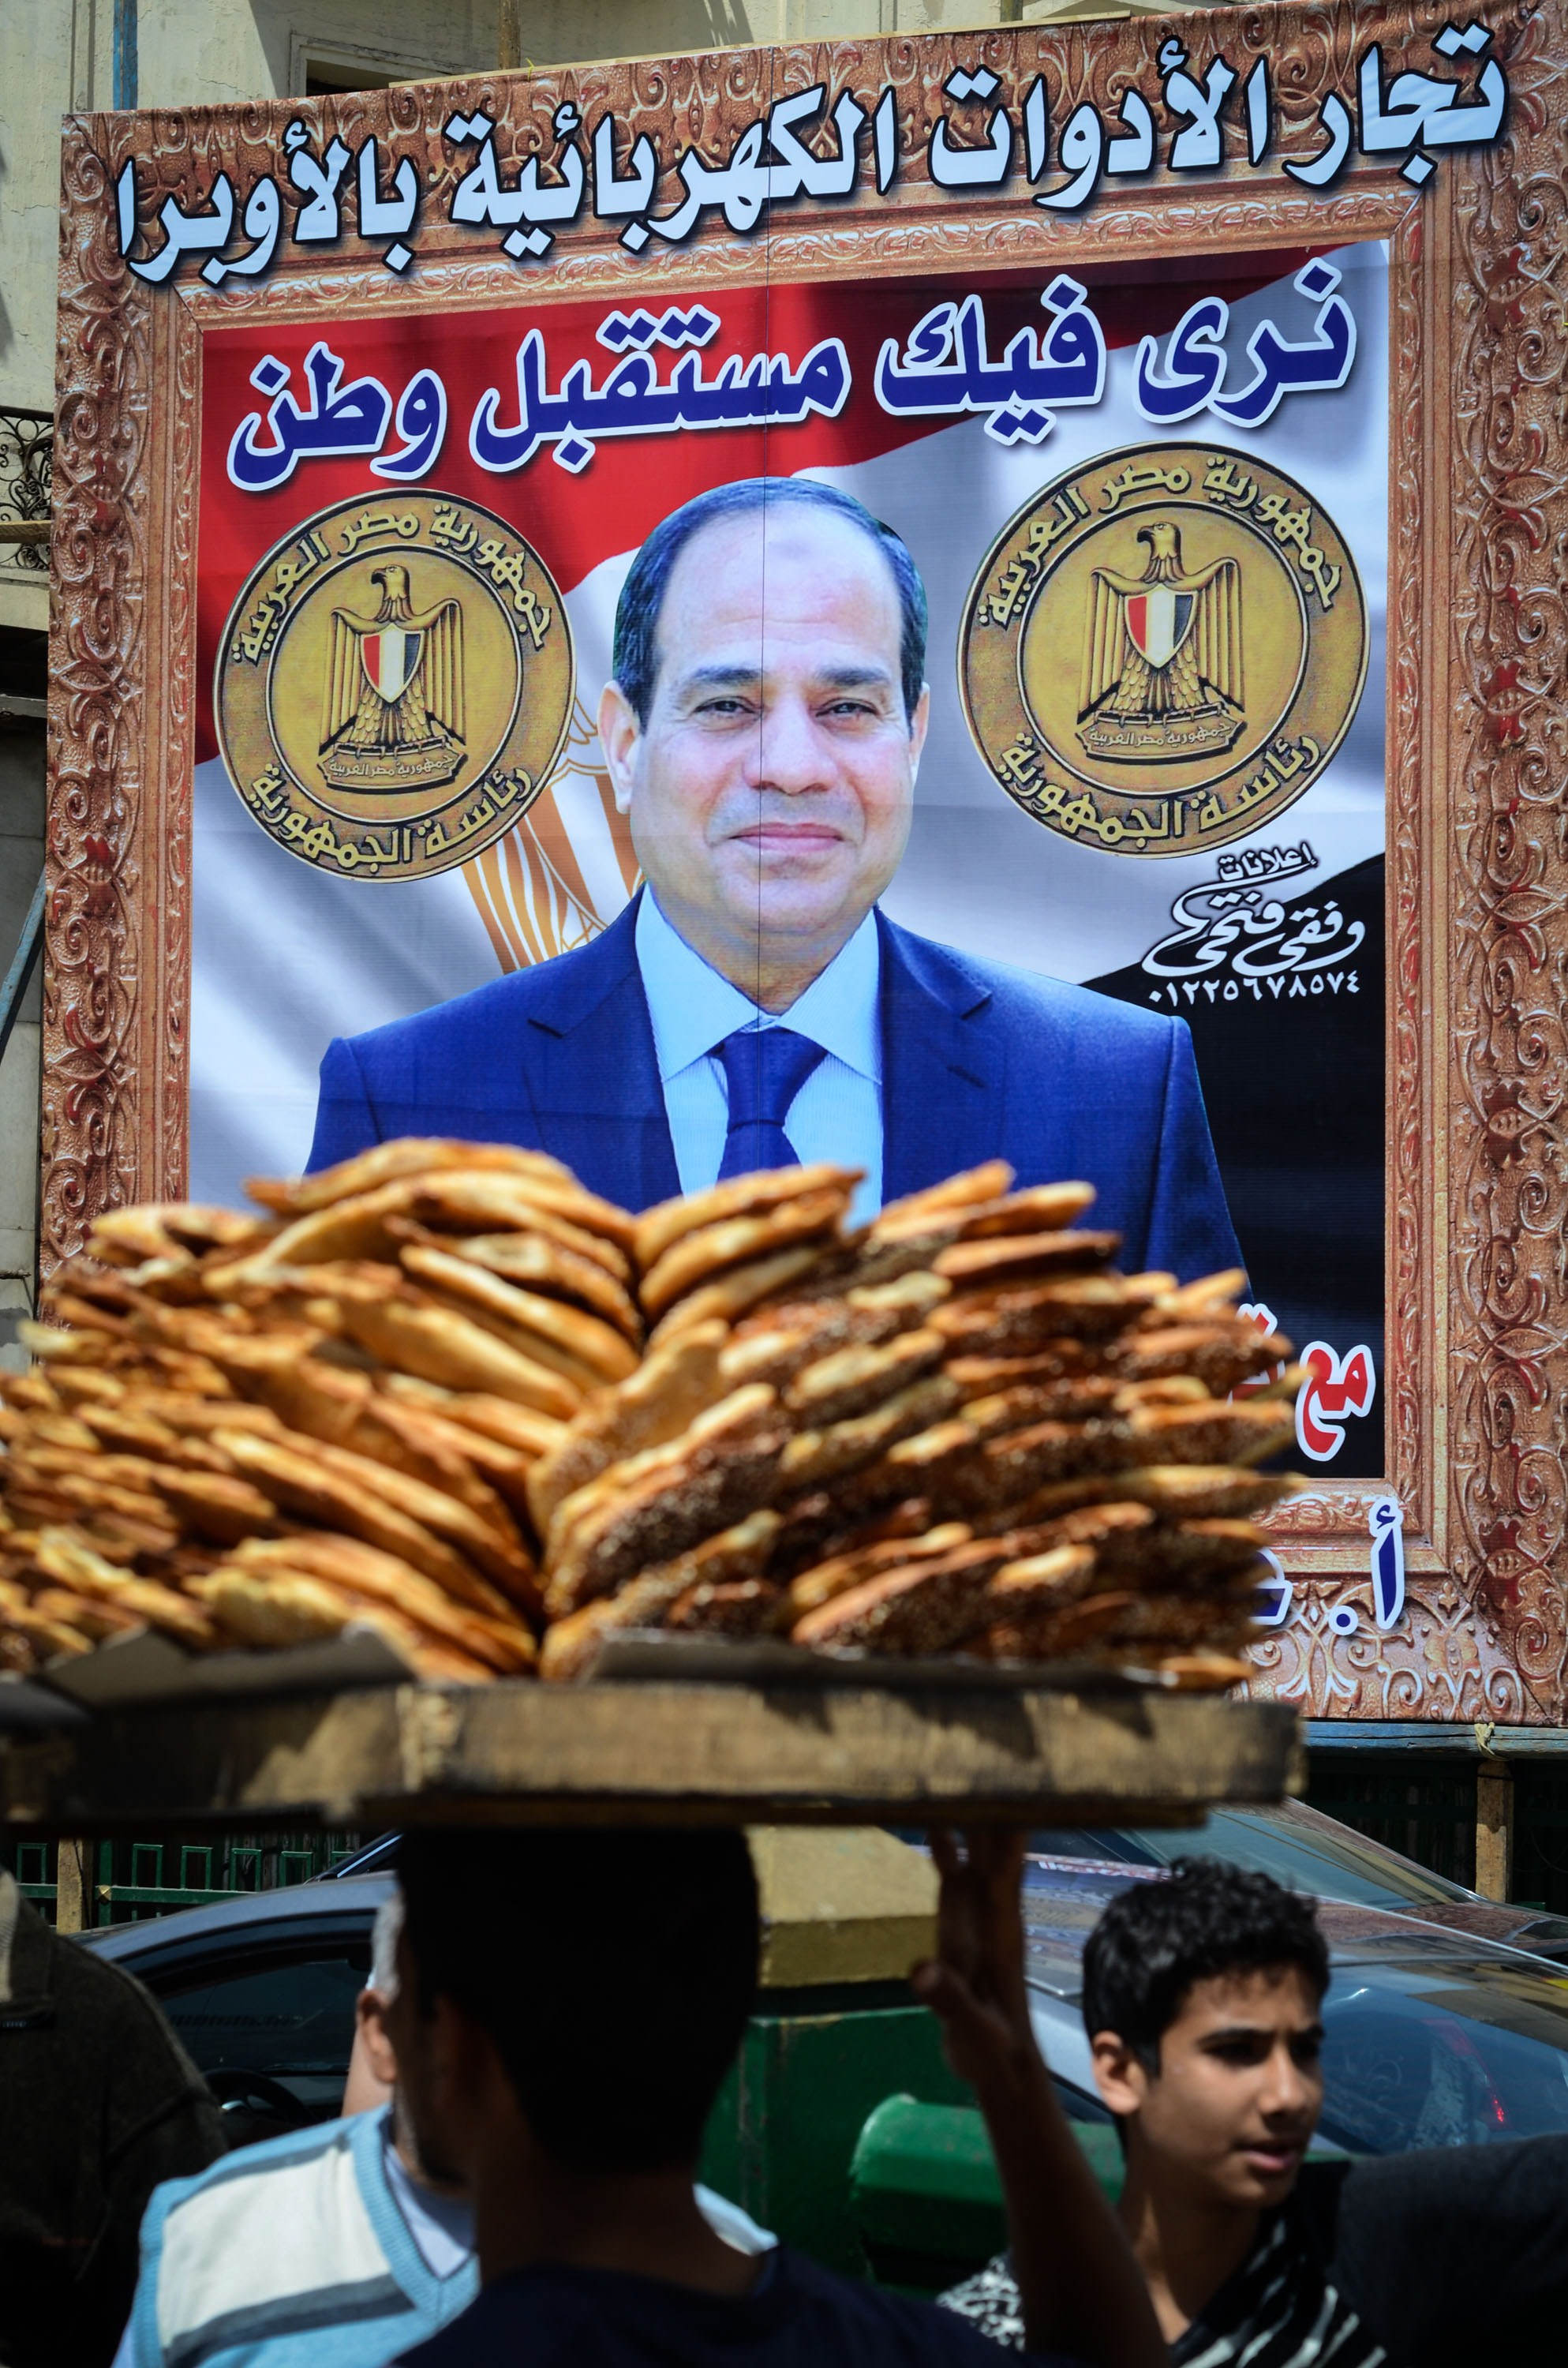 Egyptians walk past a poster bearing a portrait of retired army chief and presidential candidate Abdel Fattah al-Sisi on April 12, 2014 in the capital Cairo. Sisi is expected to win the May 26-27 presidential election riding on a wave of popularity for having removed the divisive Islamist president Mohamed Morsi after mass protests demanding his resignation. AFP PHOTO / MOHAMED EL-SHAHED